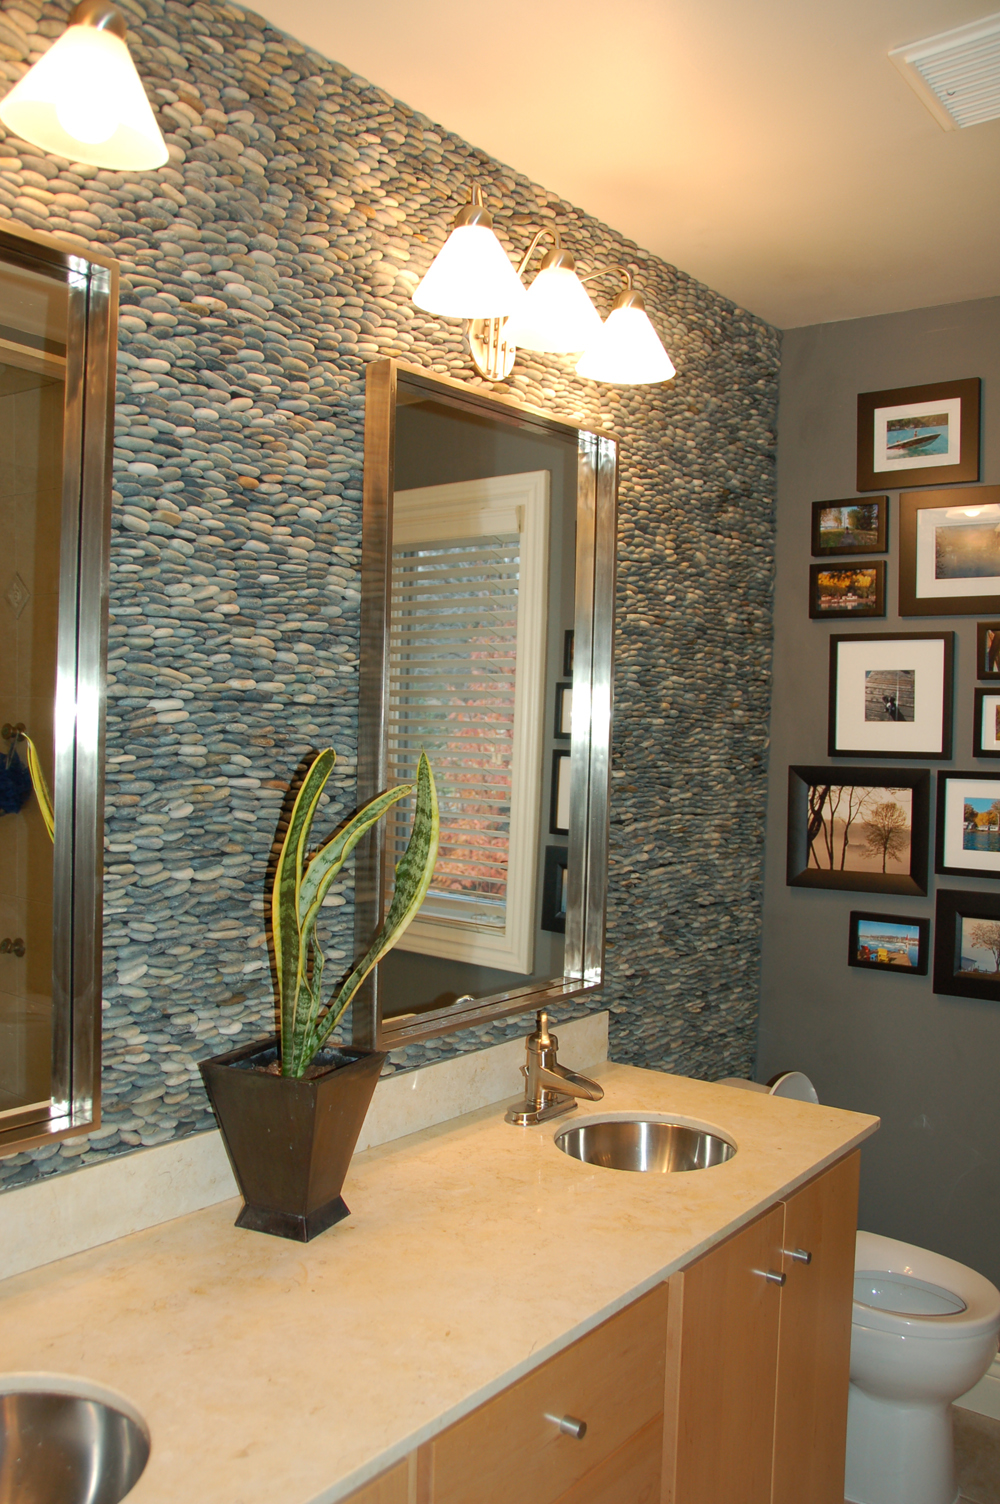 29 Great Ideas And Pictures Of River Rock Tiles For The